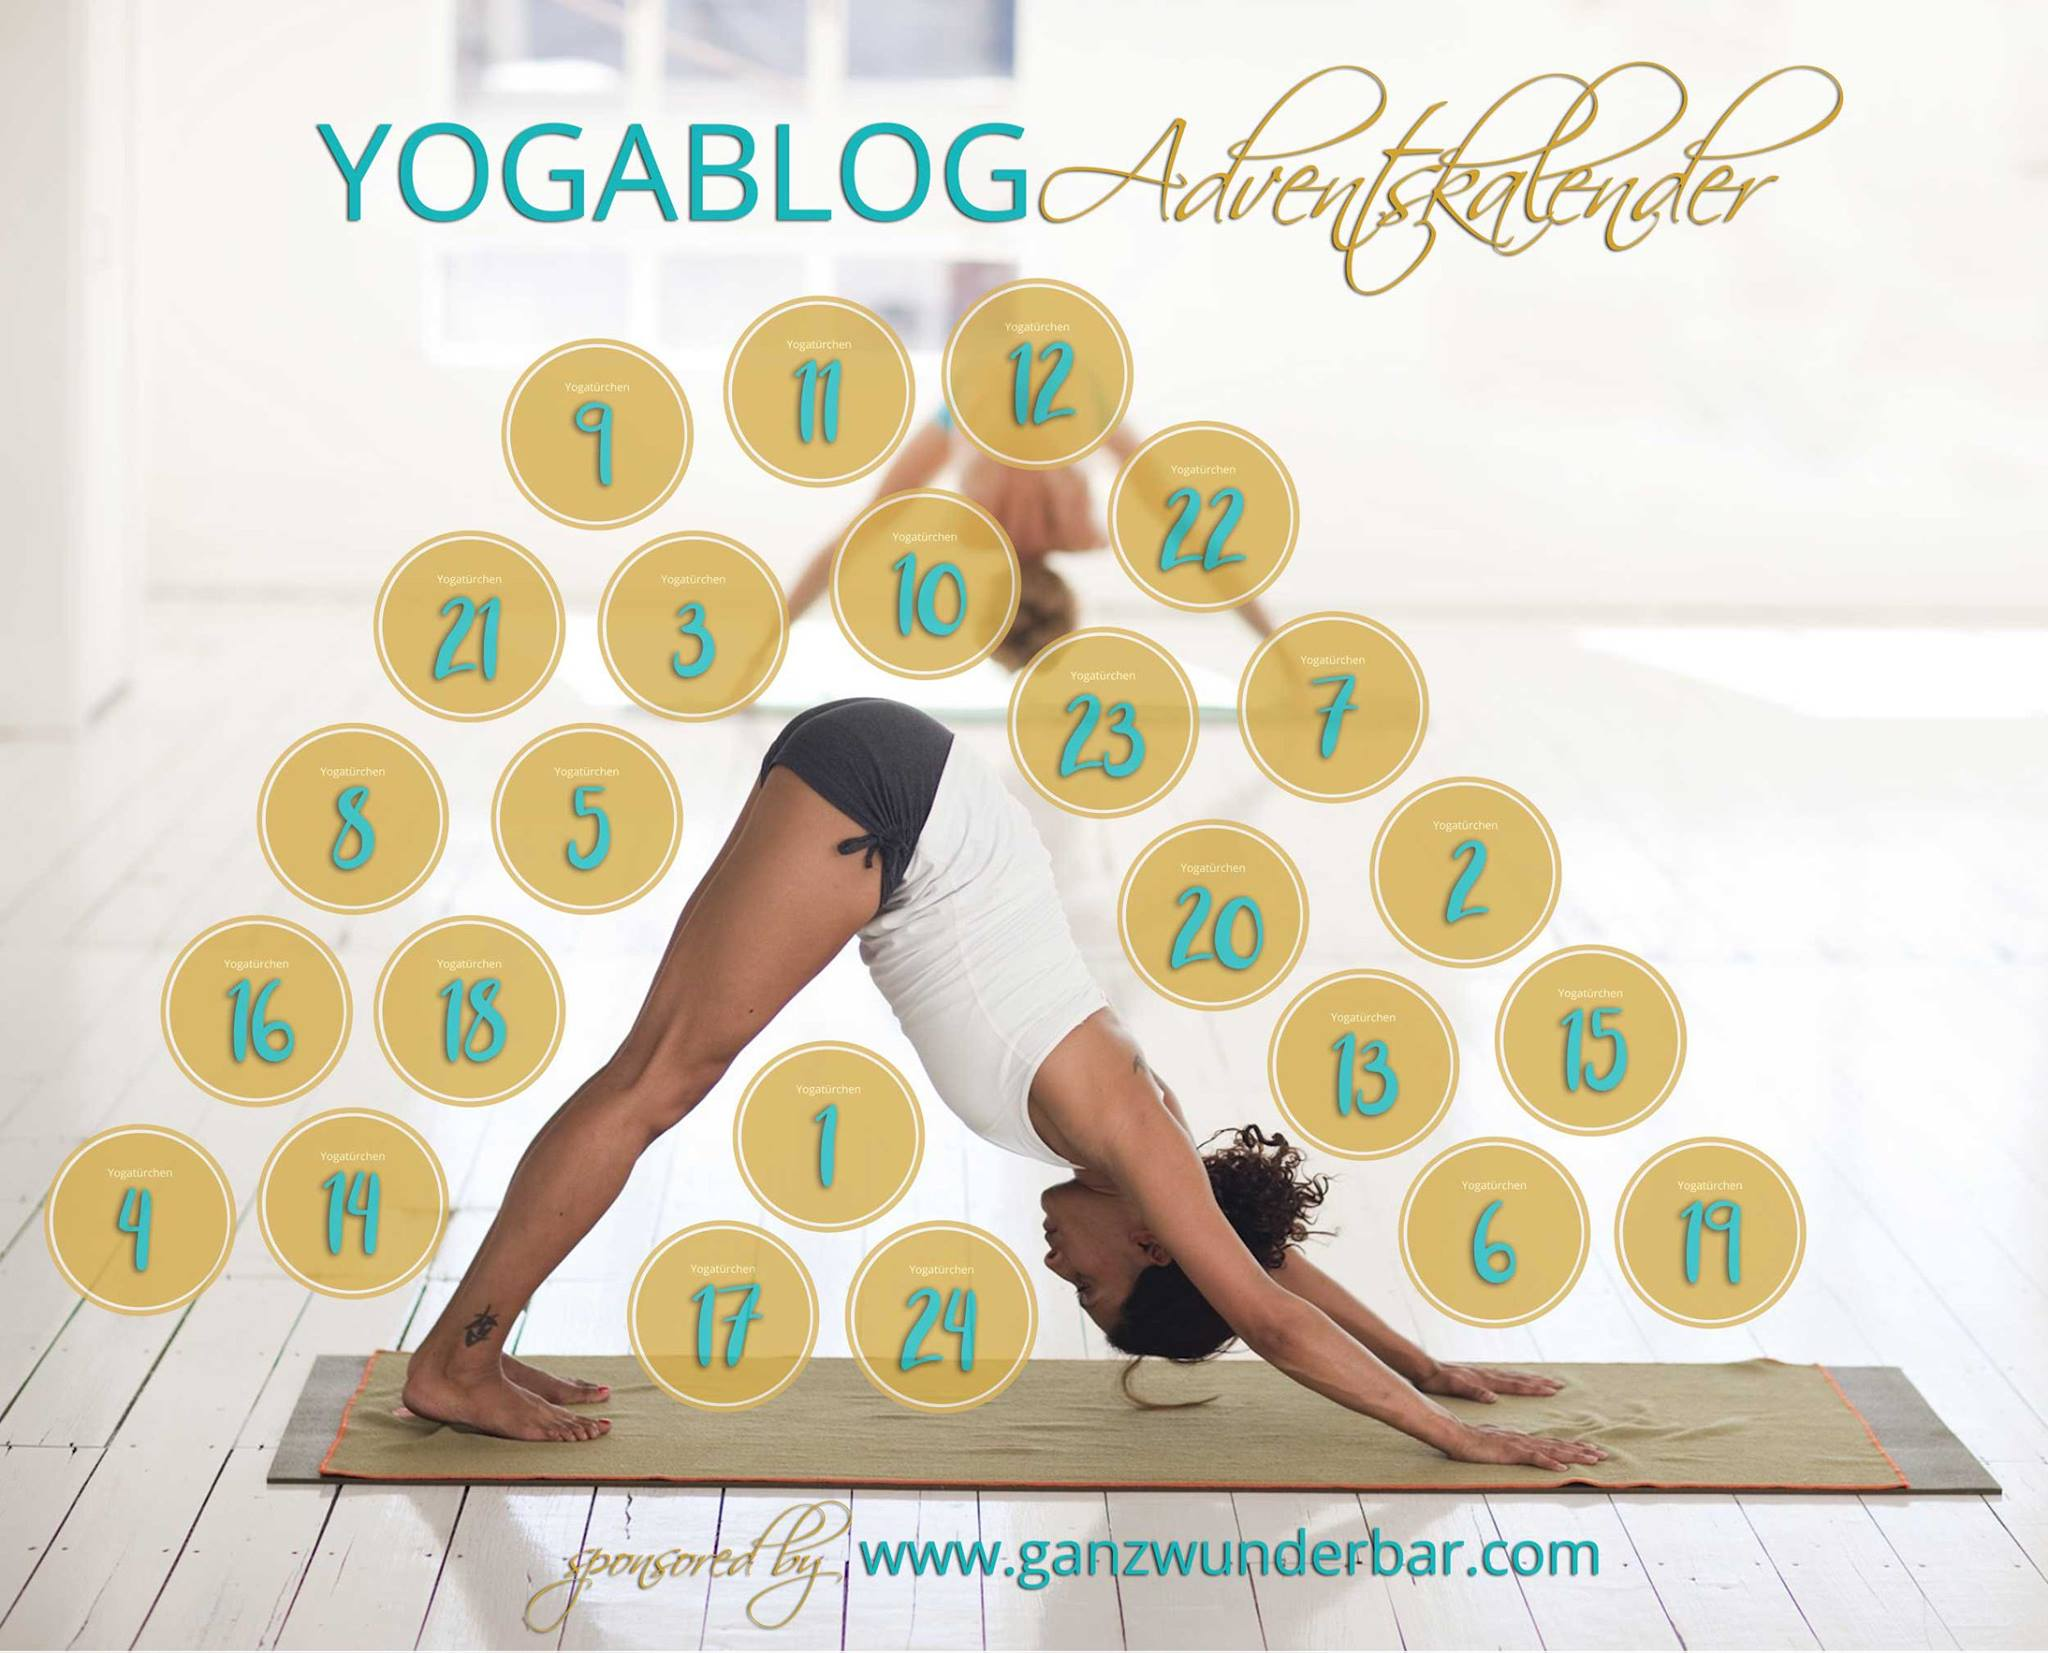 Der Yoga Blog Adventskalender 2017